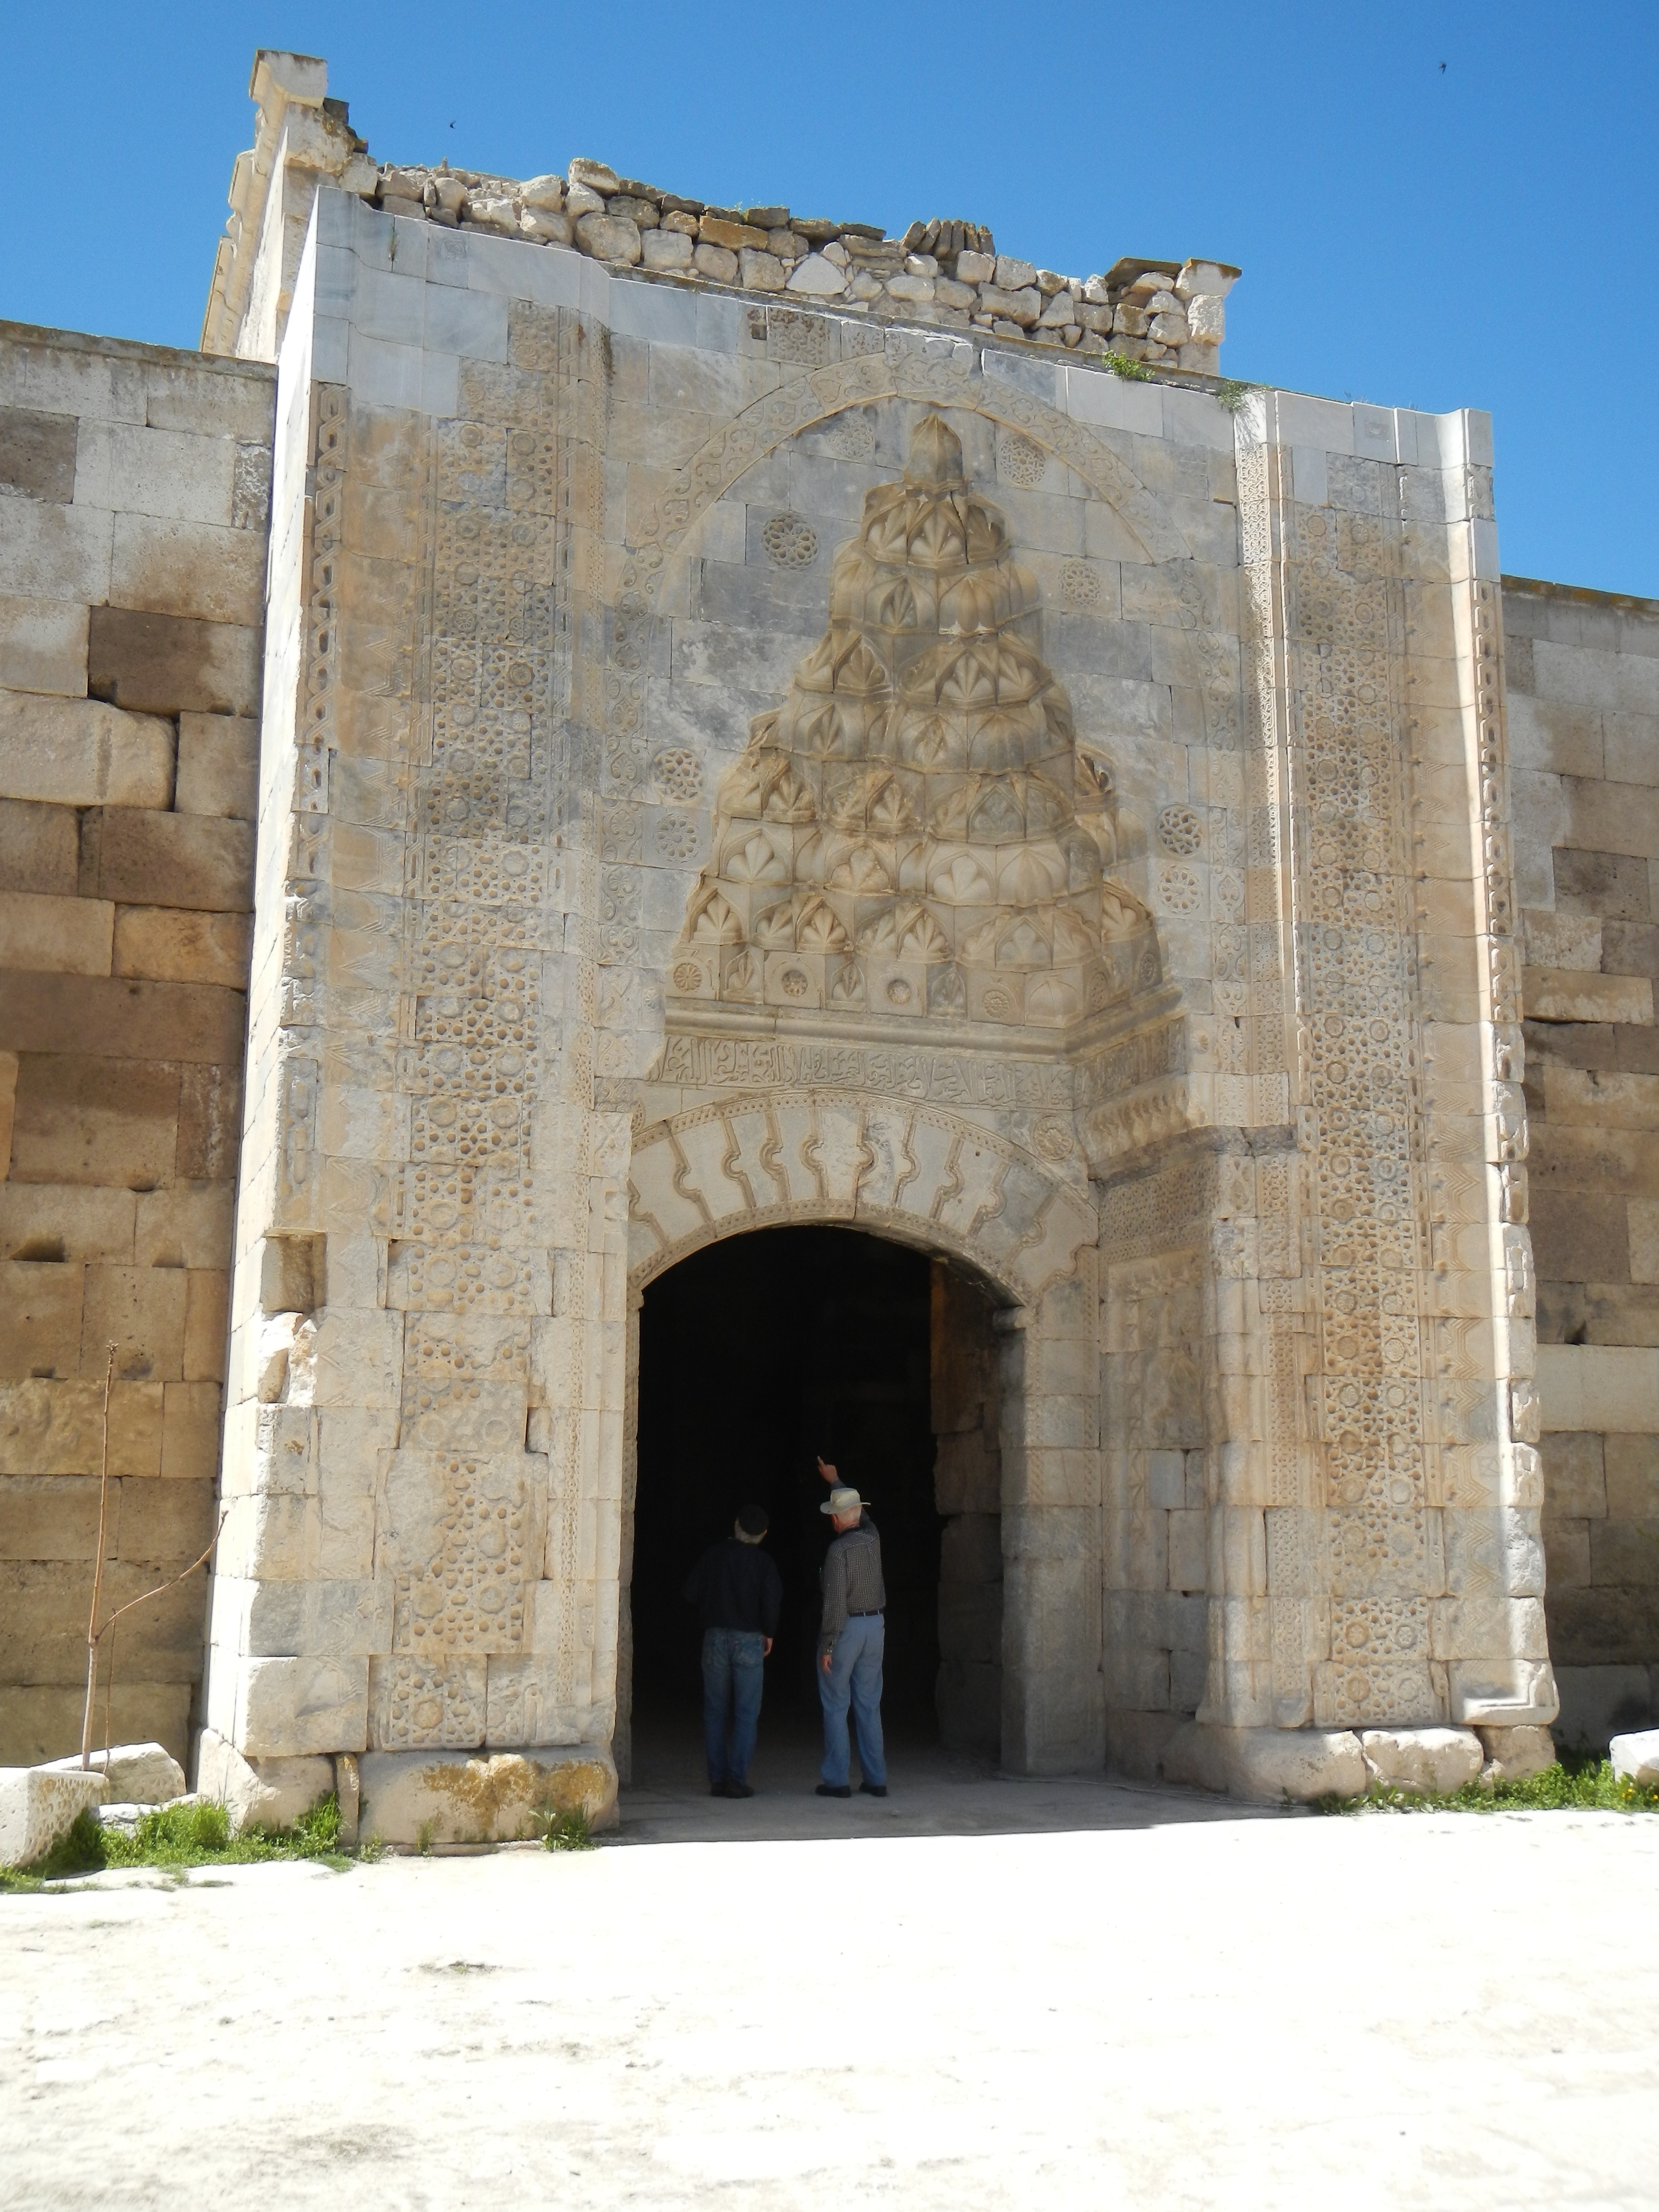 Entrance to the Sultanhanı Caravanserai